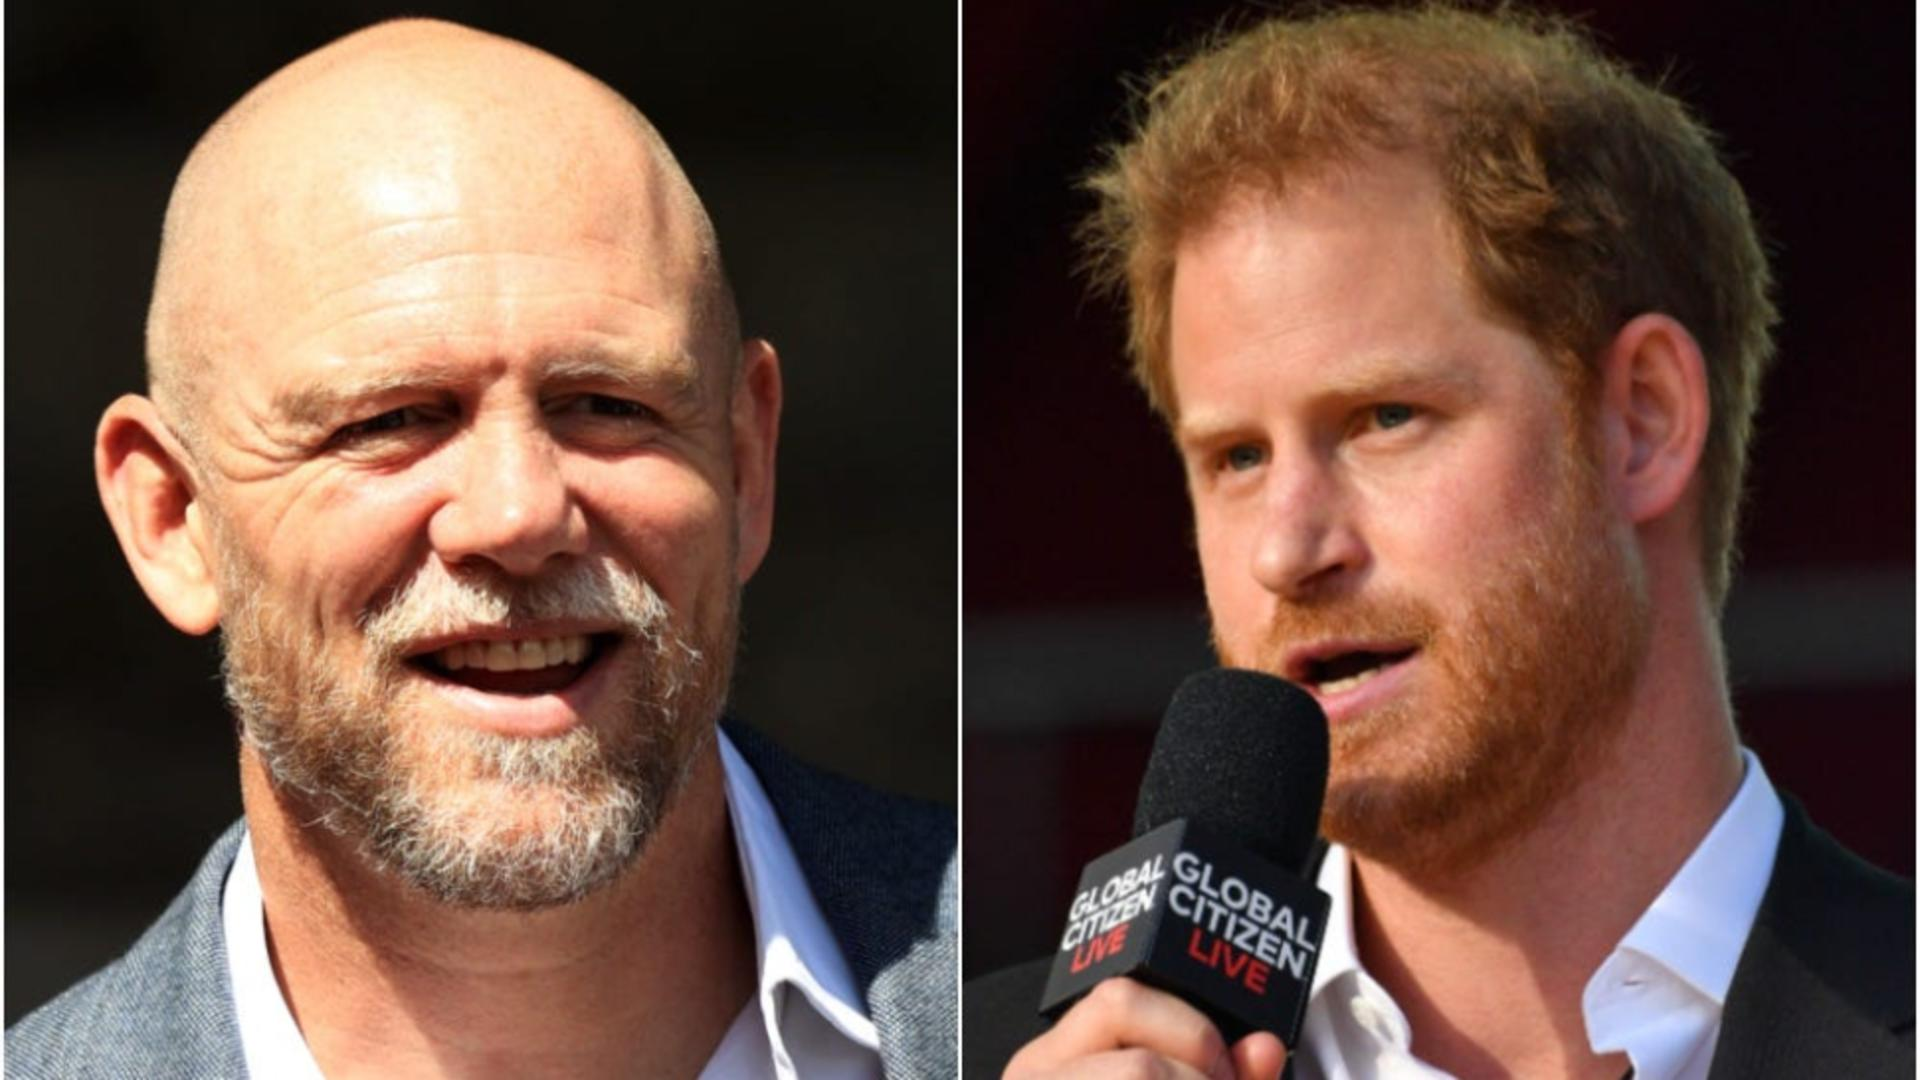 Mike Tindall și prinţul Harry. FOTO: Getty Images